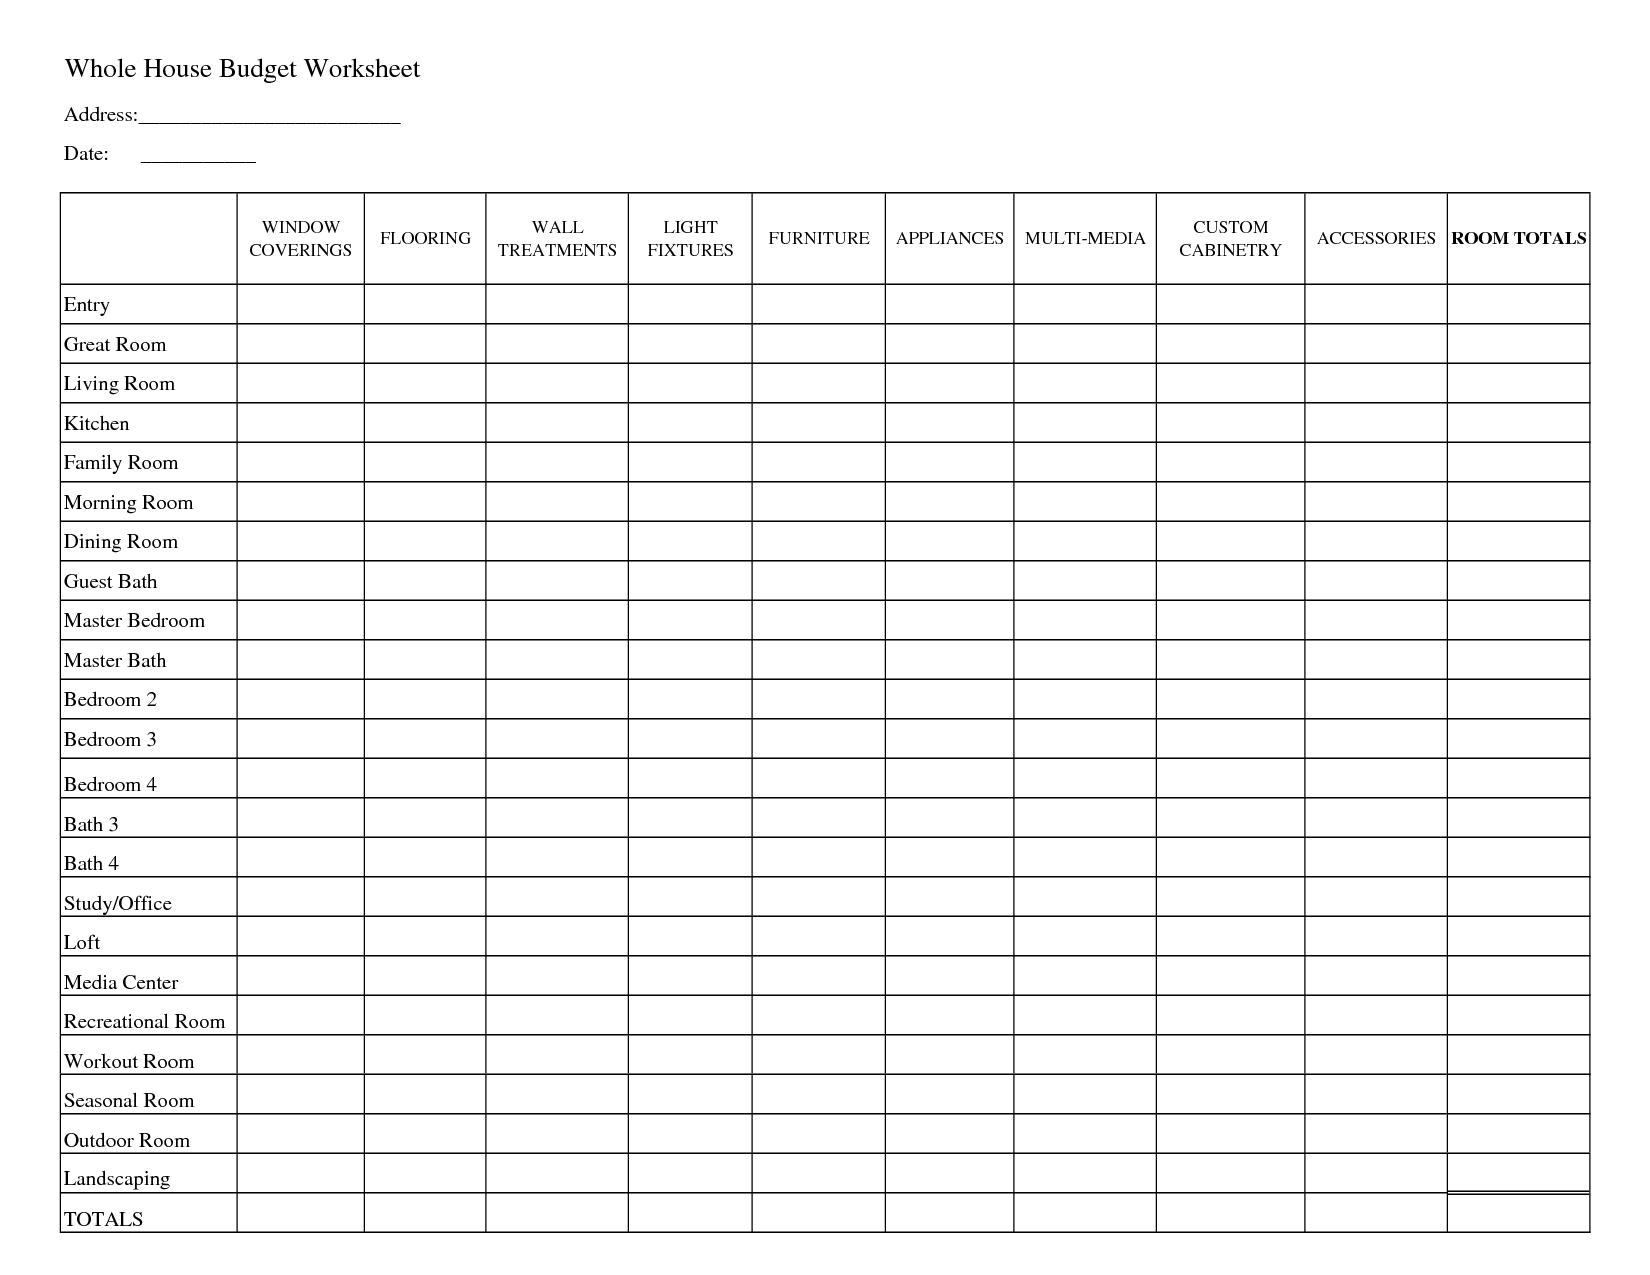 Printable Household Budget Worksheets | Whole House Budget ...